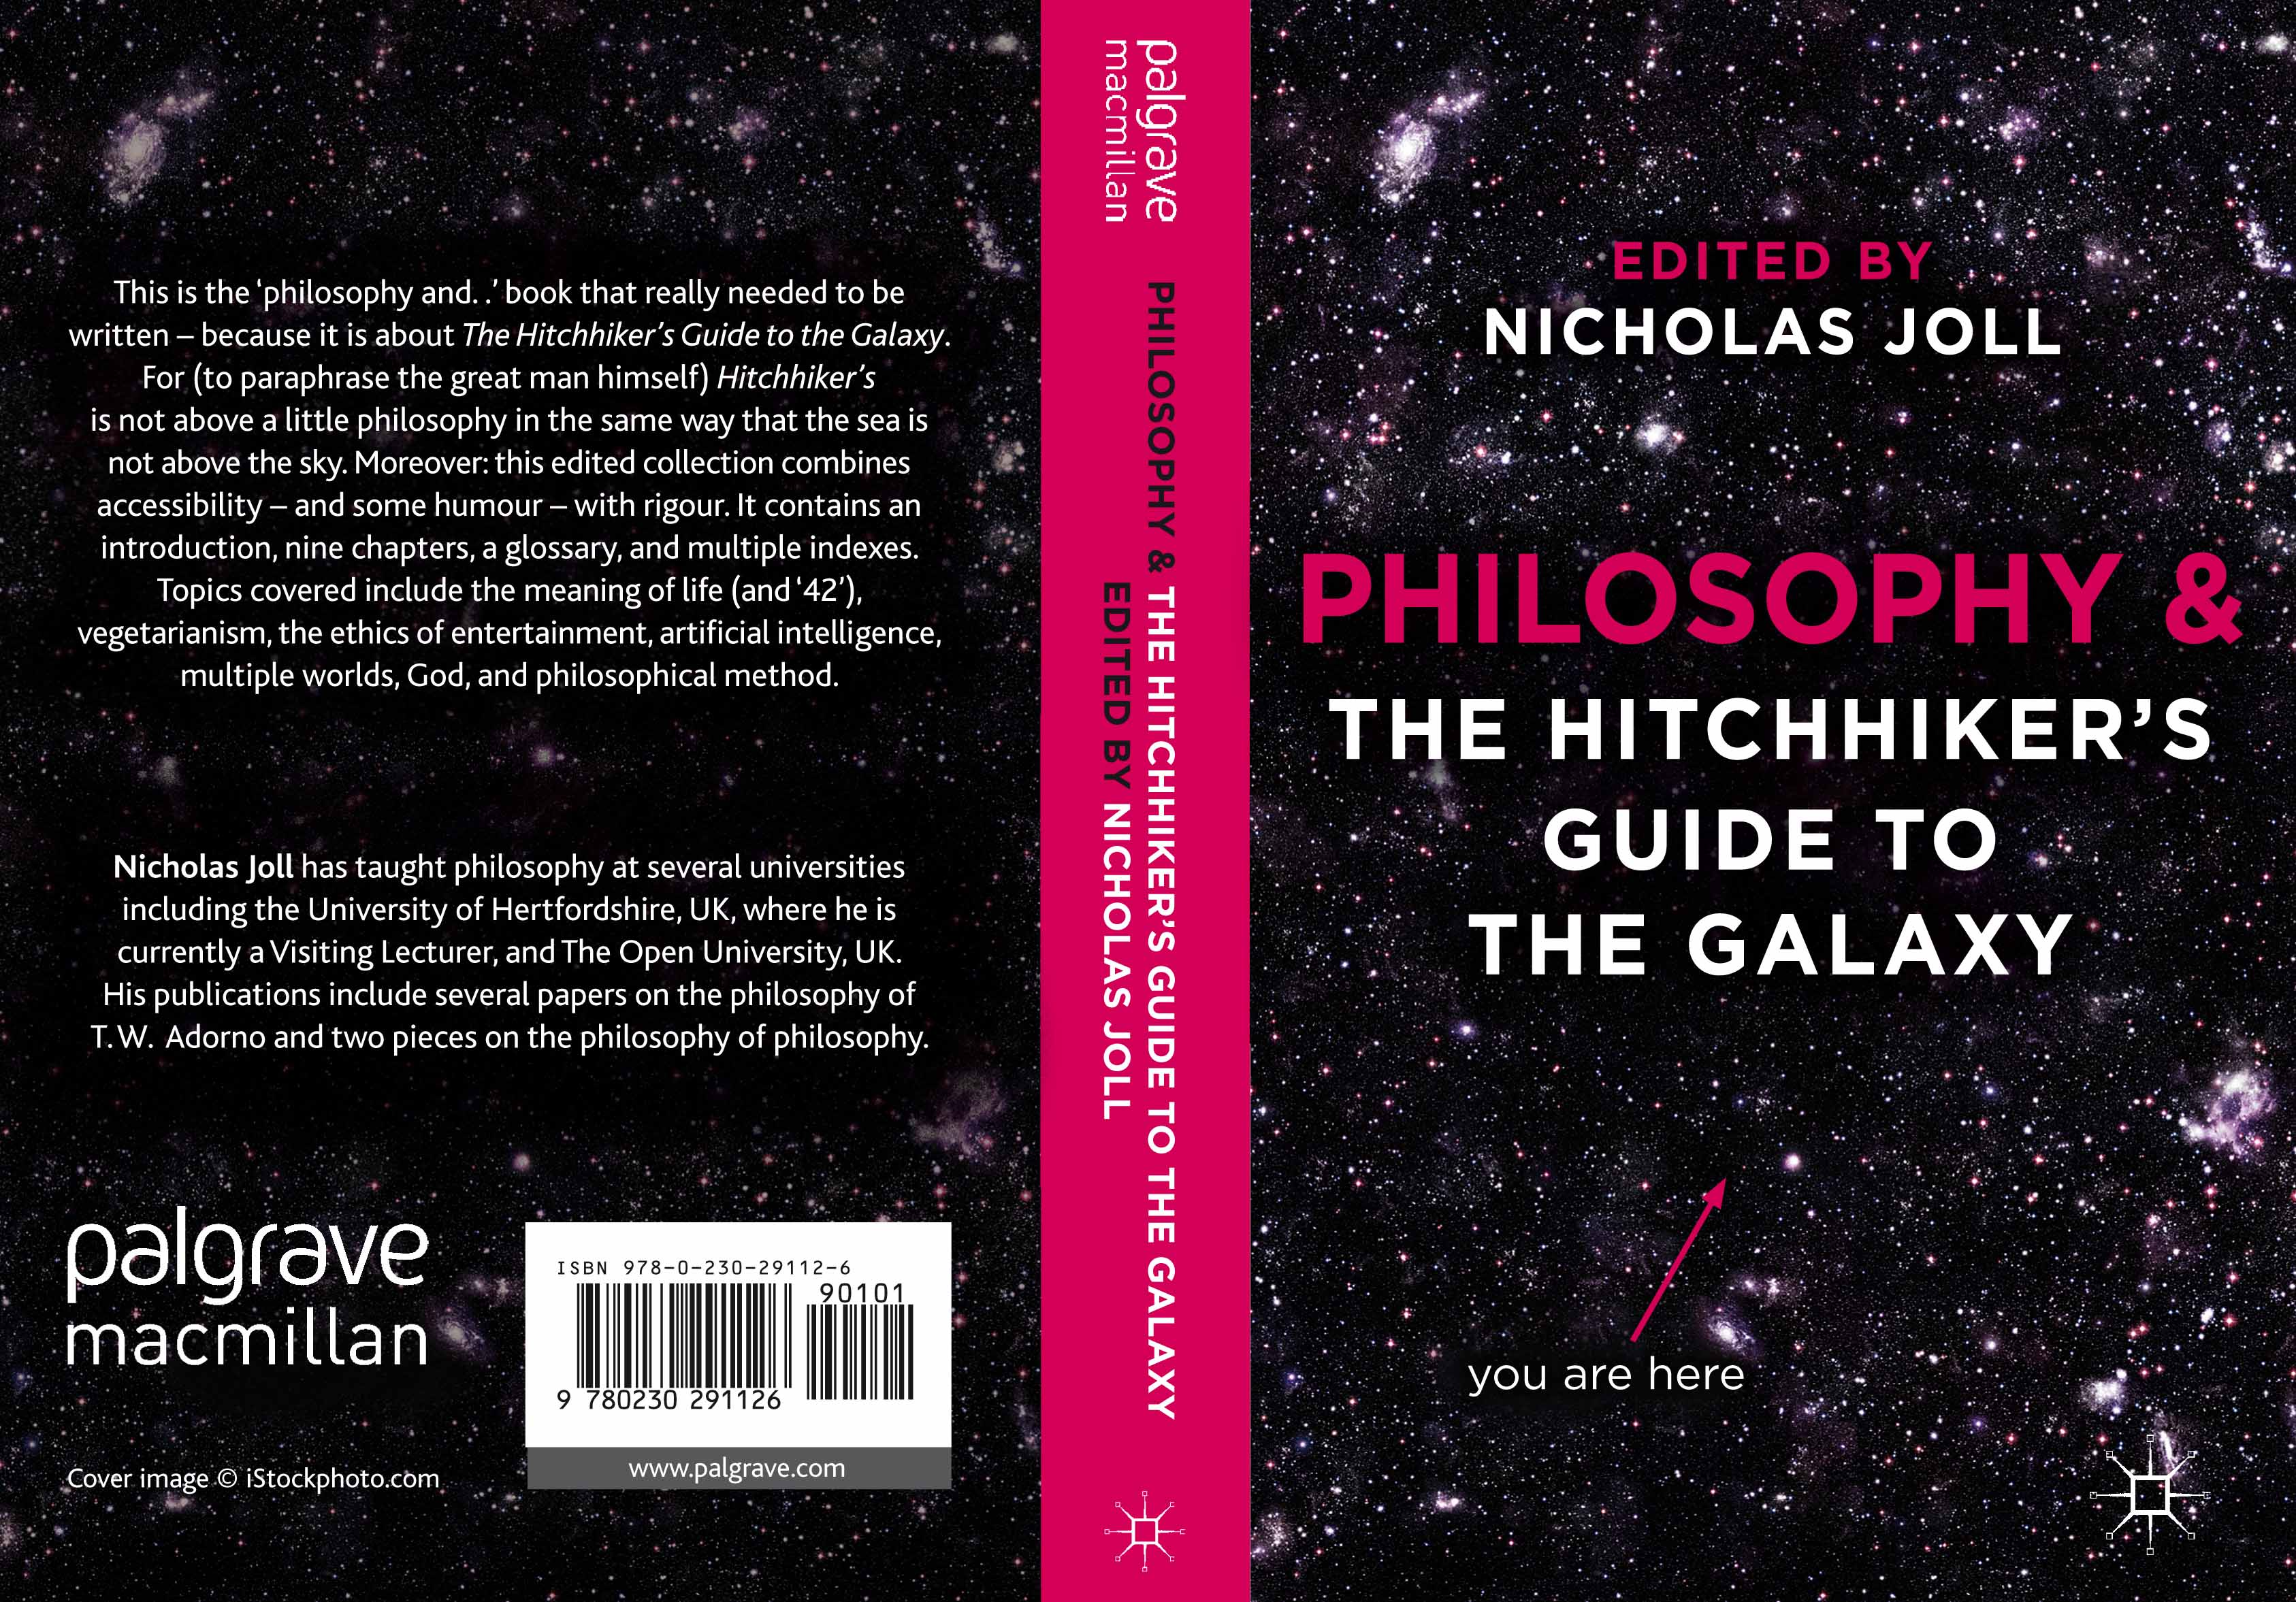 Cover of my Hitchhiker book